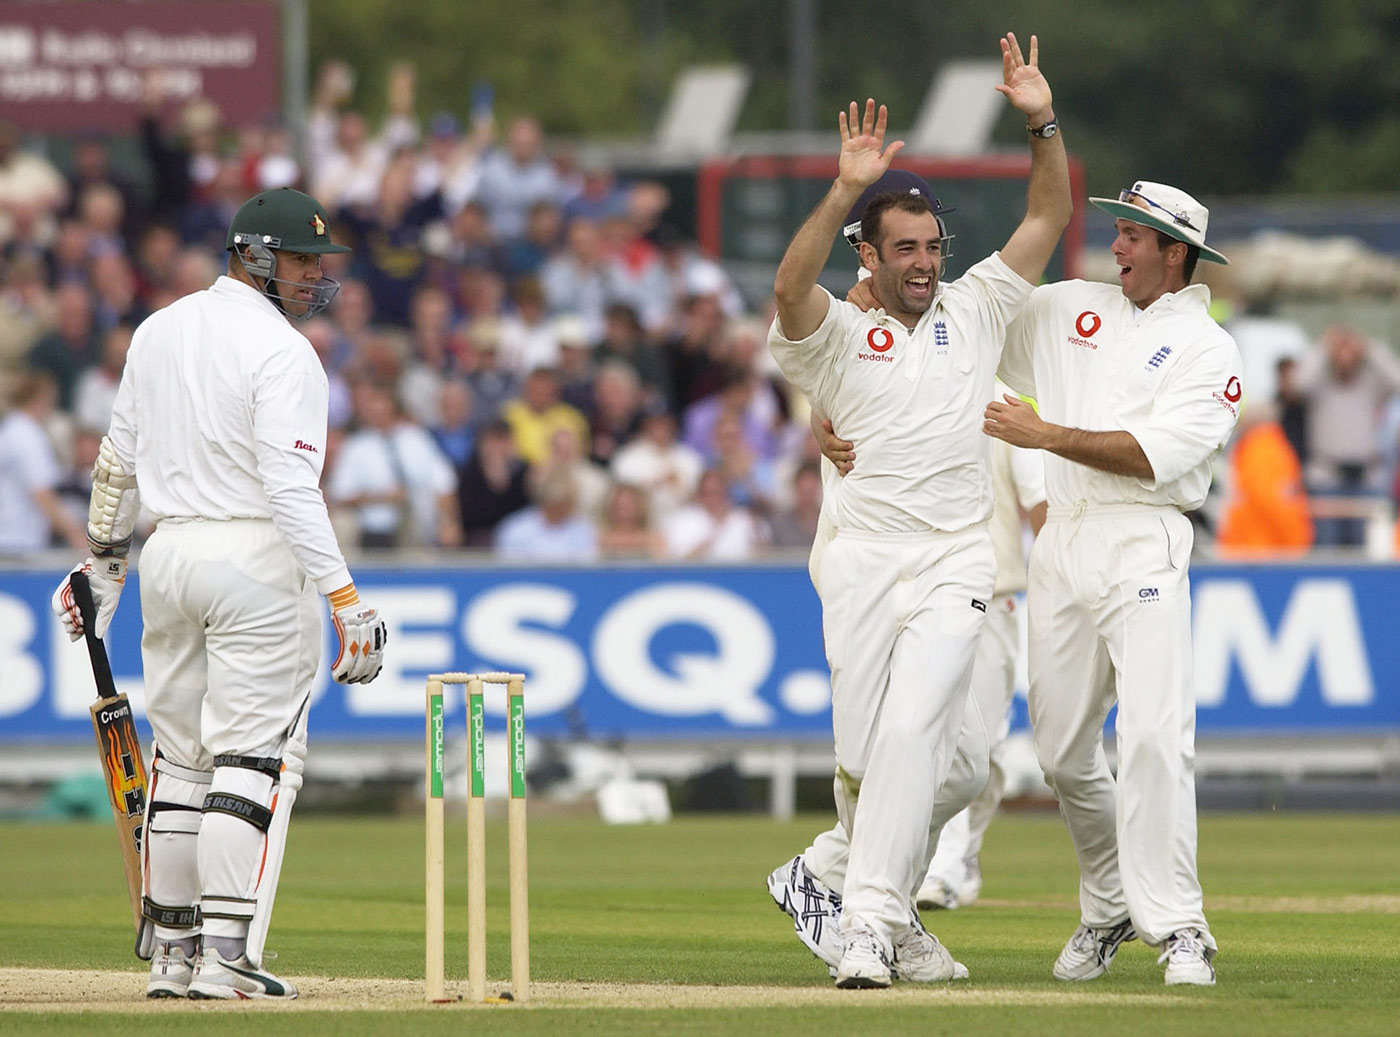 As good as it gets: Richard Johnson celebrates the fifth of his six wickets in Zimbabwe's first innings in the Durham Test of 2003